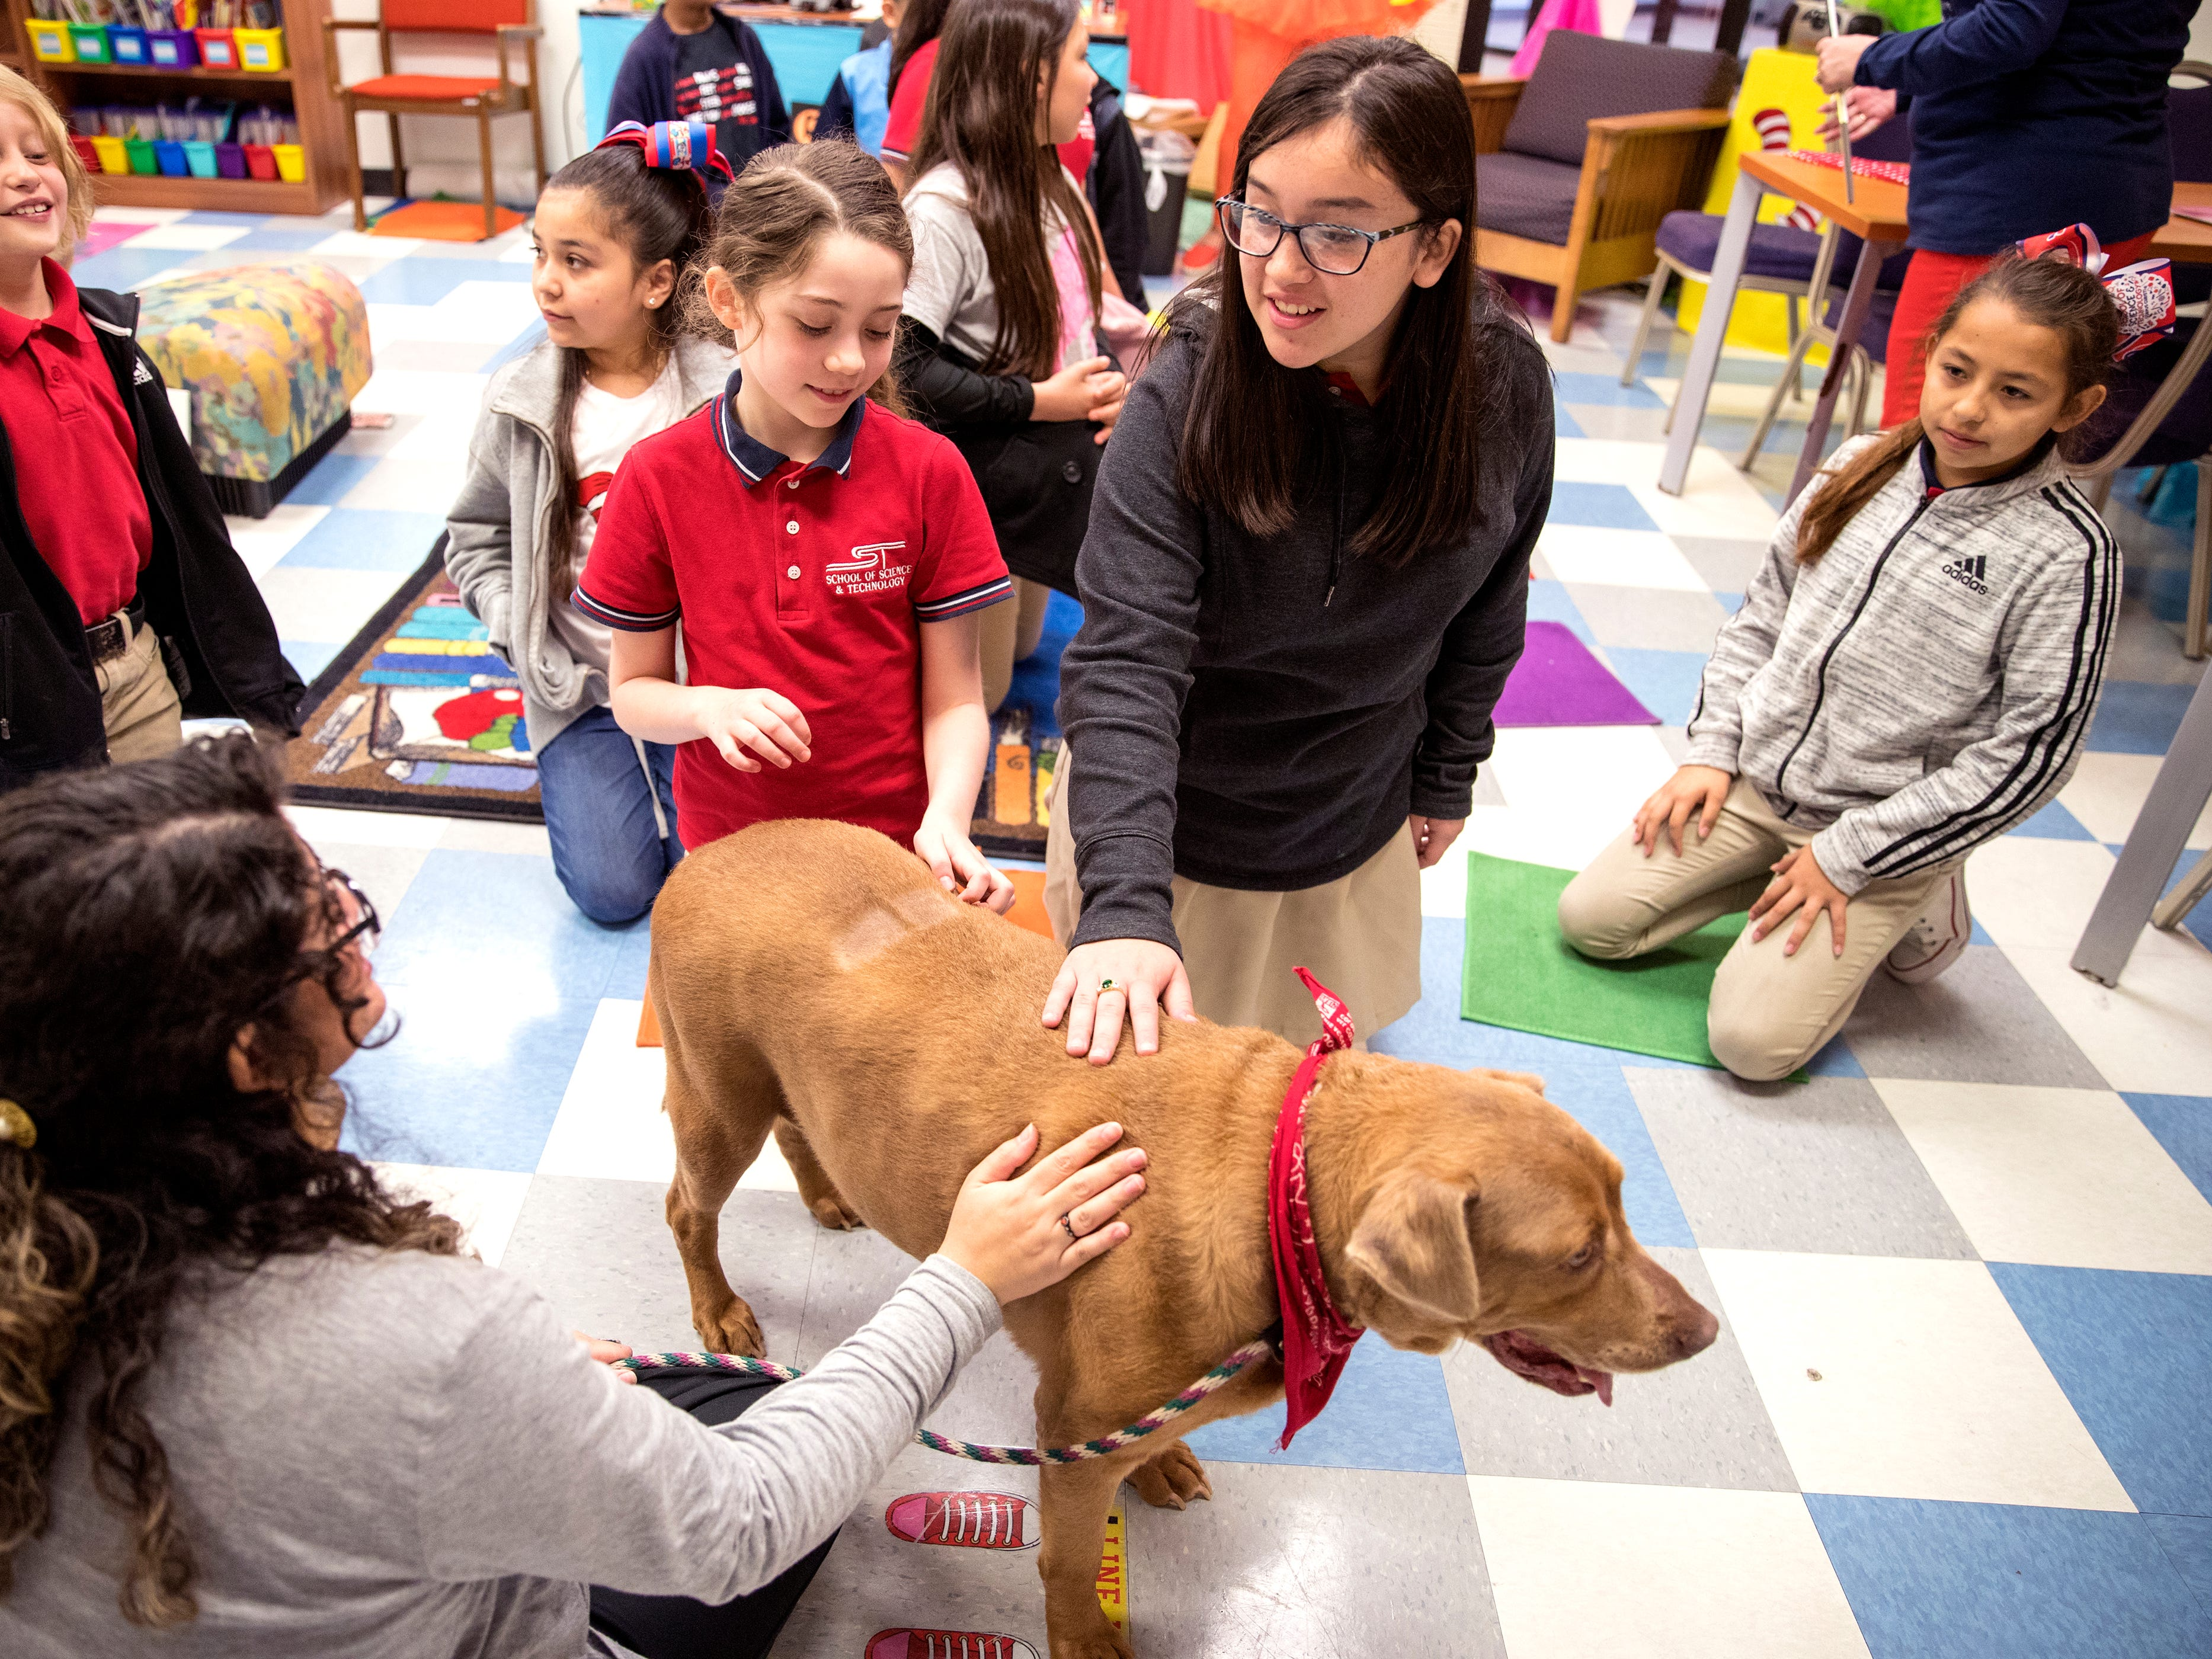 School of Science and Technology students Abigail Potts (left), 8, and Mary Jane Castillo, 11, pet Paige, a dog from the Gulf Coast Humane Society during a Dr. Seuss's Birthday and Read Across America event on Friday, March 1, 2019. Students later read to a Paige, who visited along with Mia Burbage (sitting) from the shelter.